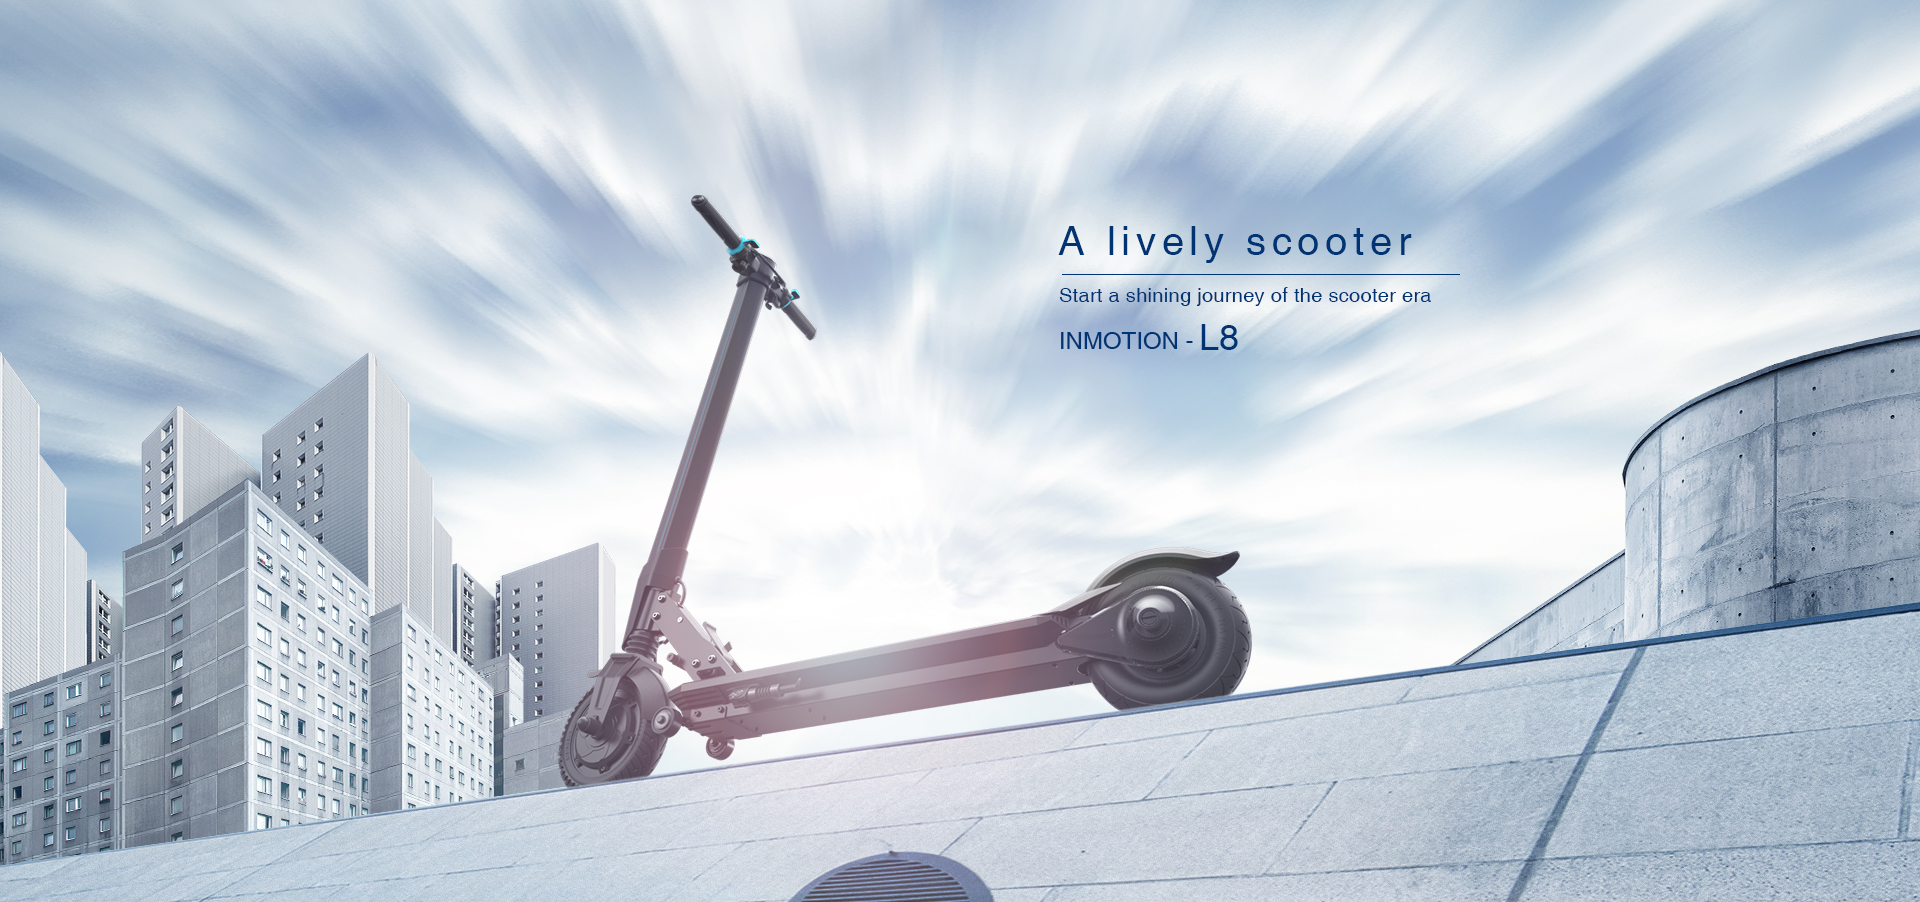 A lively scooter,Start a shining journey of the scooter era,INMOTION - L8